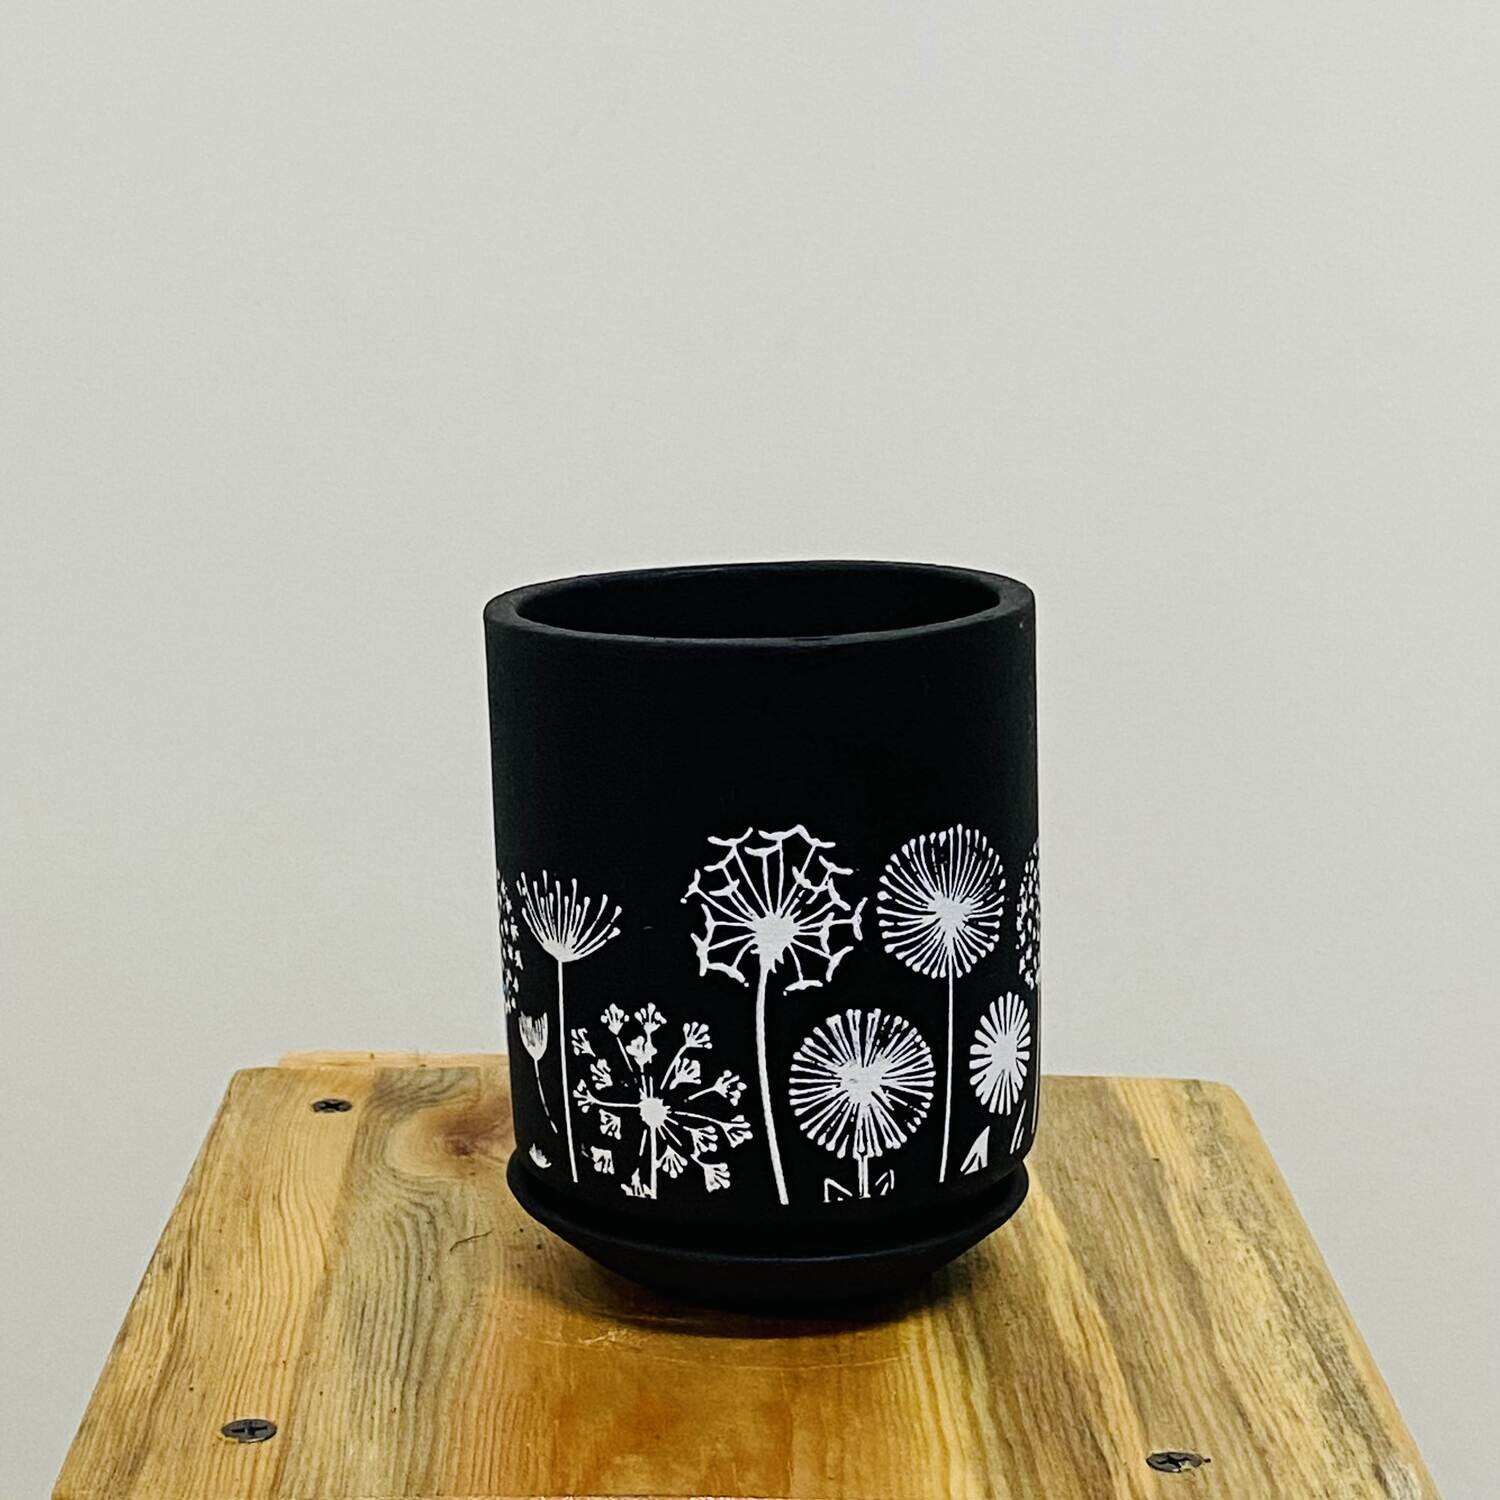 Terracotta - Black Printed Series - Cylinder Pot with Saucer